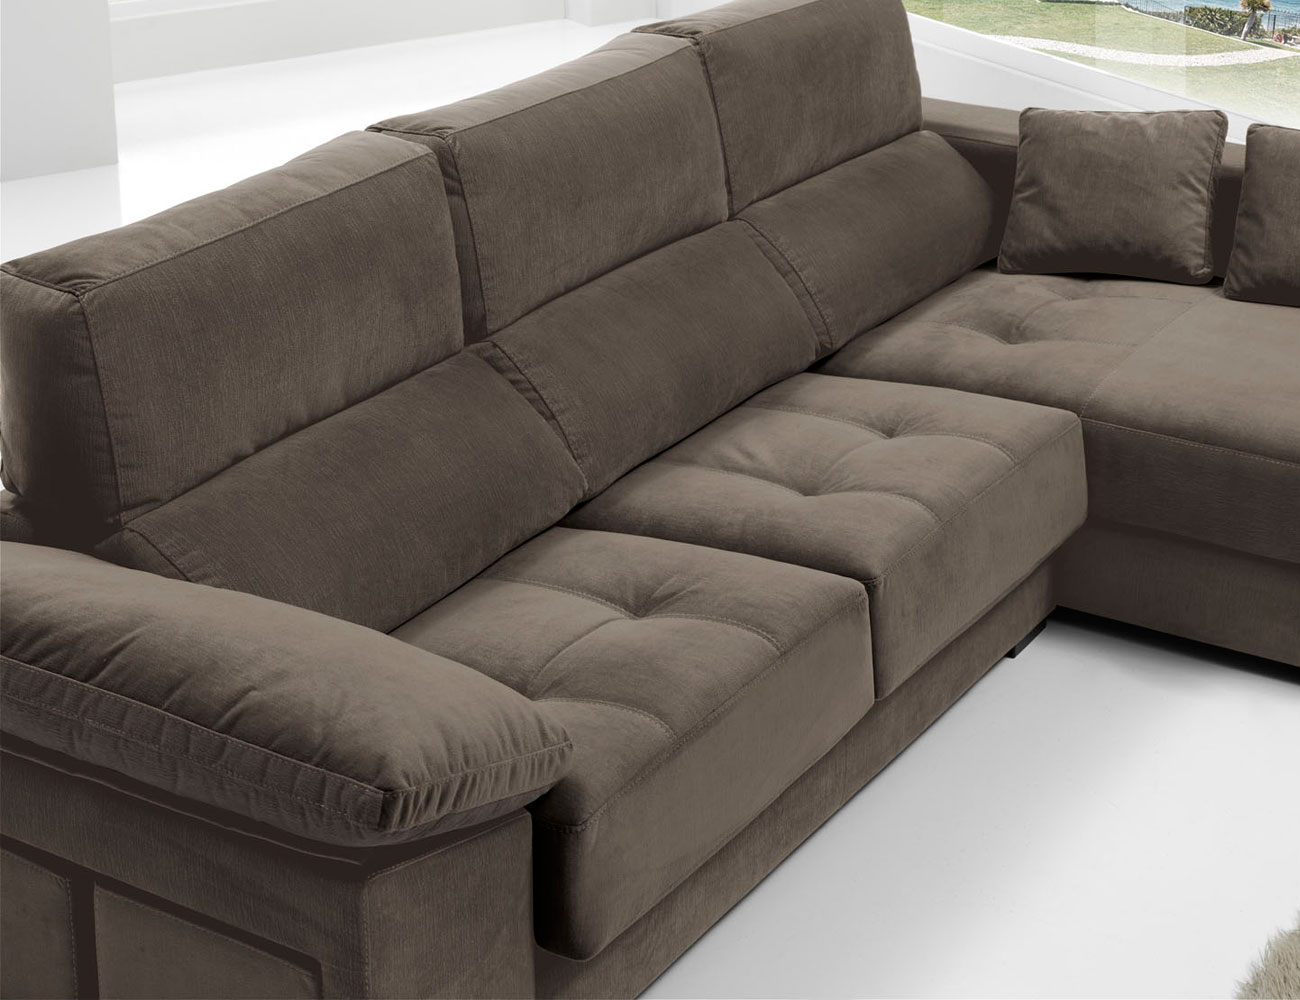 Sofa chaiselongue anti manchas bering pouf 267